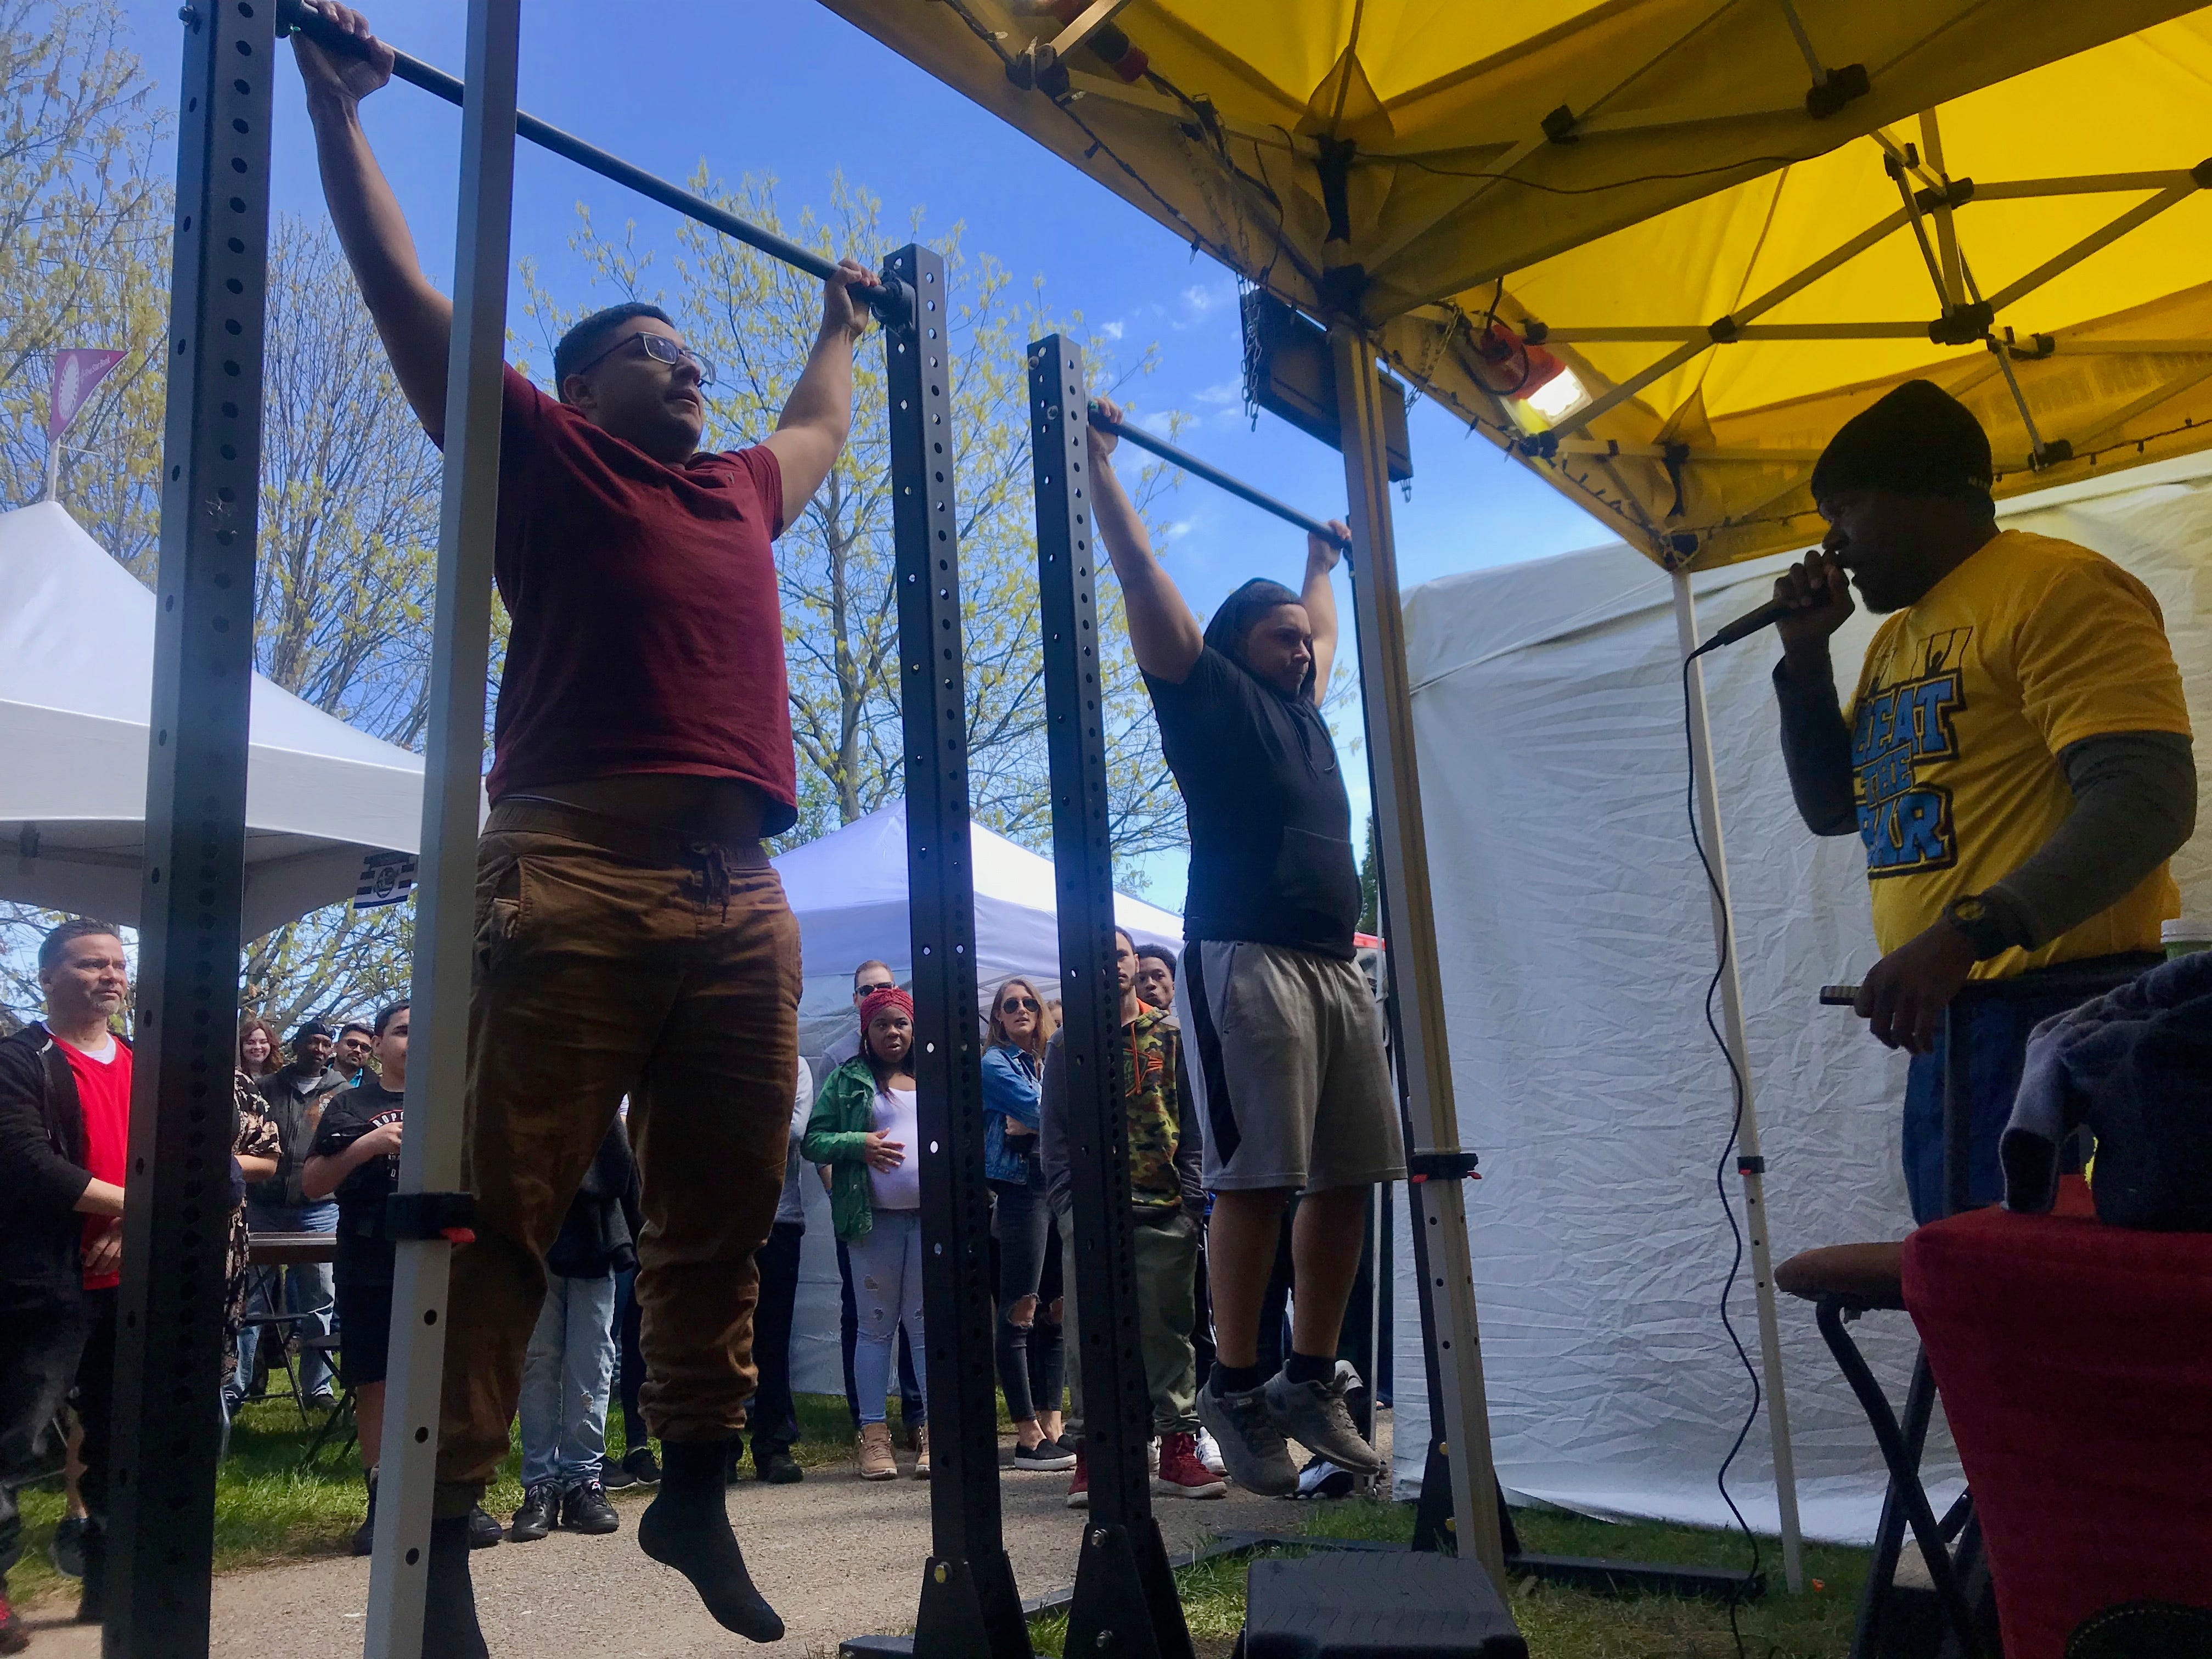 Twin brothers Juan Sampel of Rochester, left, and Jean Sampel of Irondequoit, right, both 22, compete in the Beat the Bar competition at the Rochester Lilac Festival.